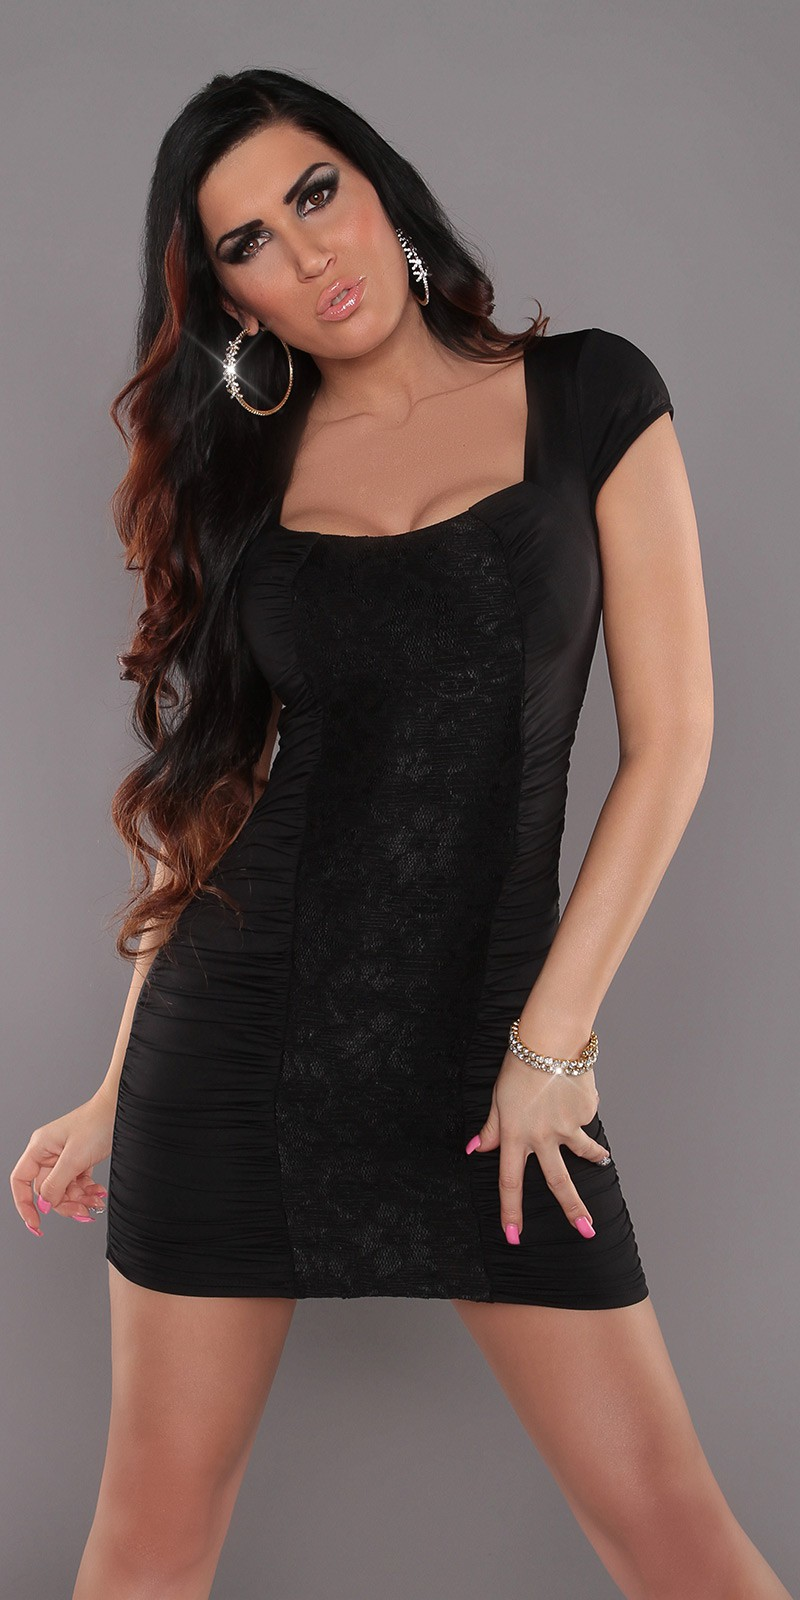 Black Square Neck Dress With Lace Insert